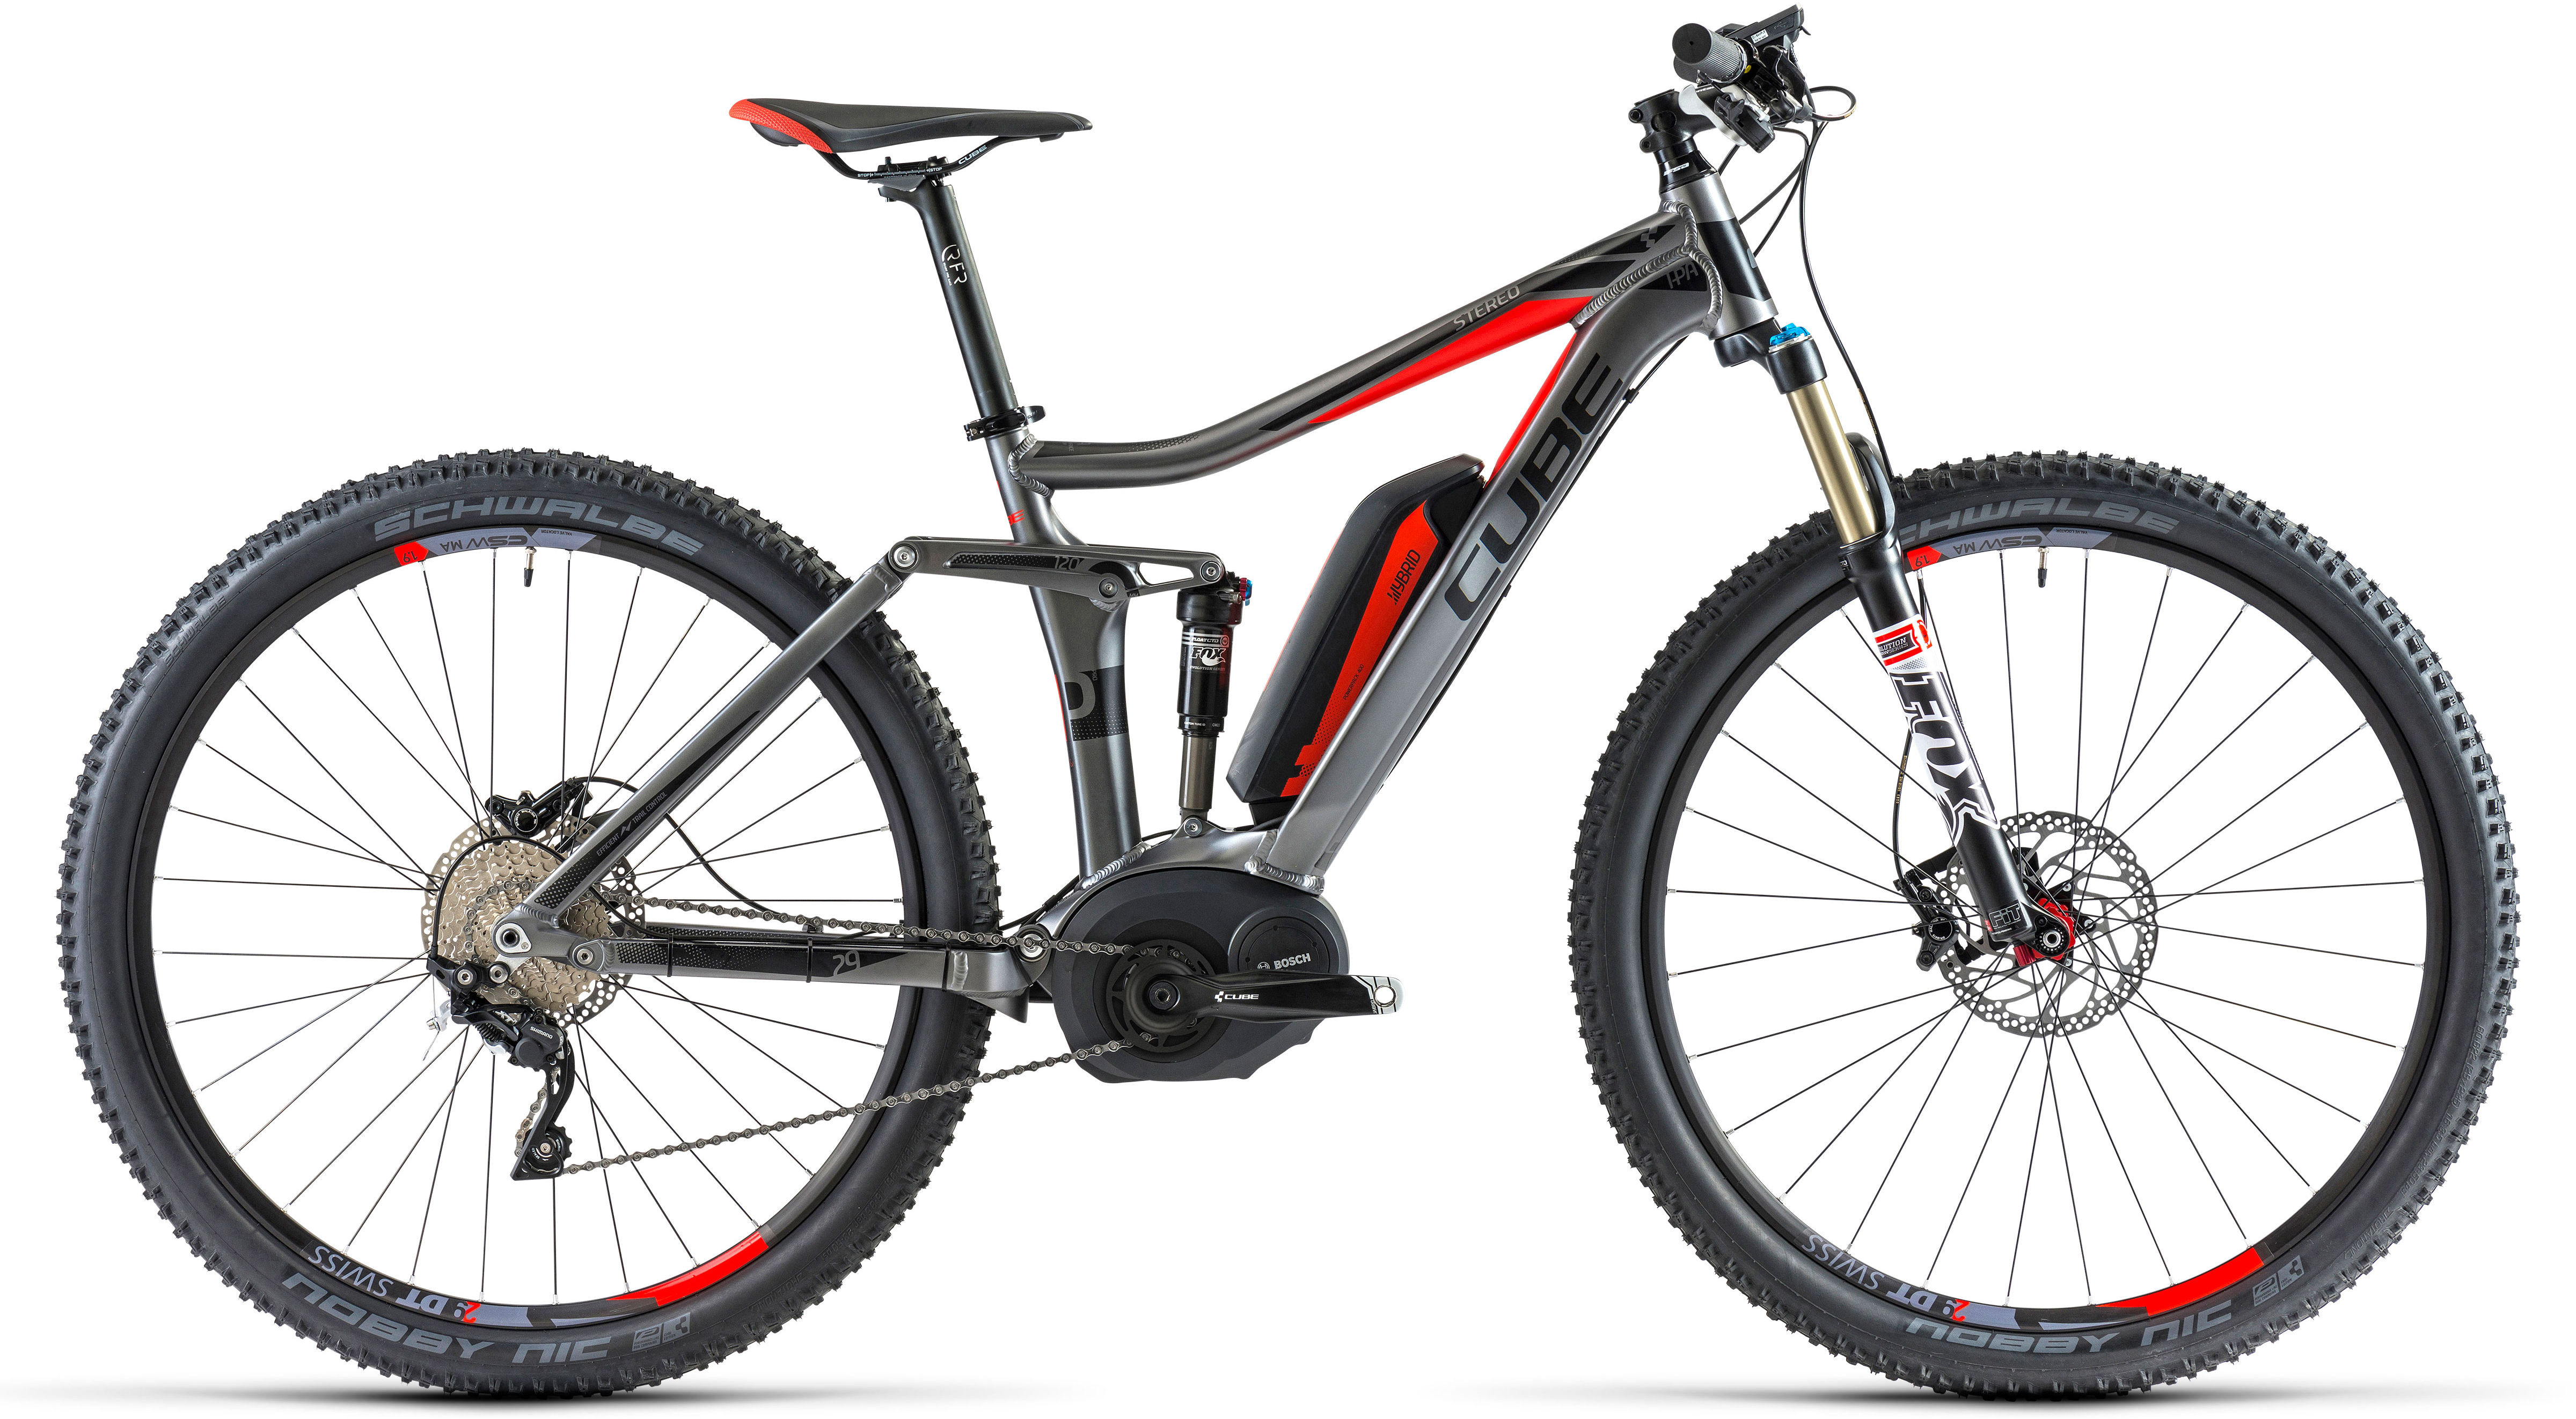 cube stereo hybrid 120 pro 29 2014 review the bike list. Black Bedroom Furniture Sets. Home Design Ideas